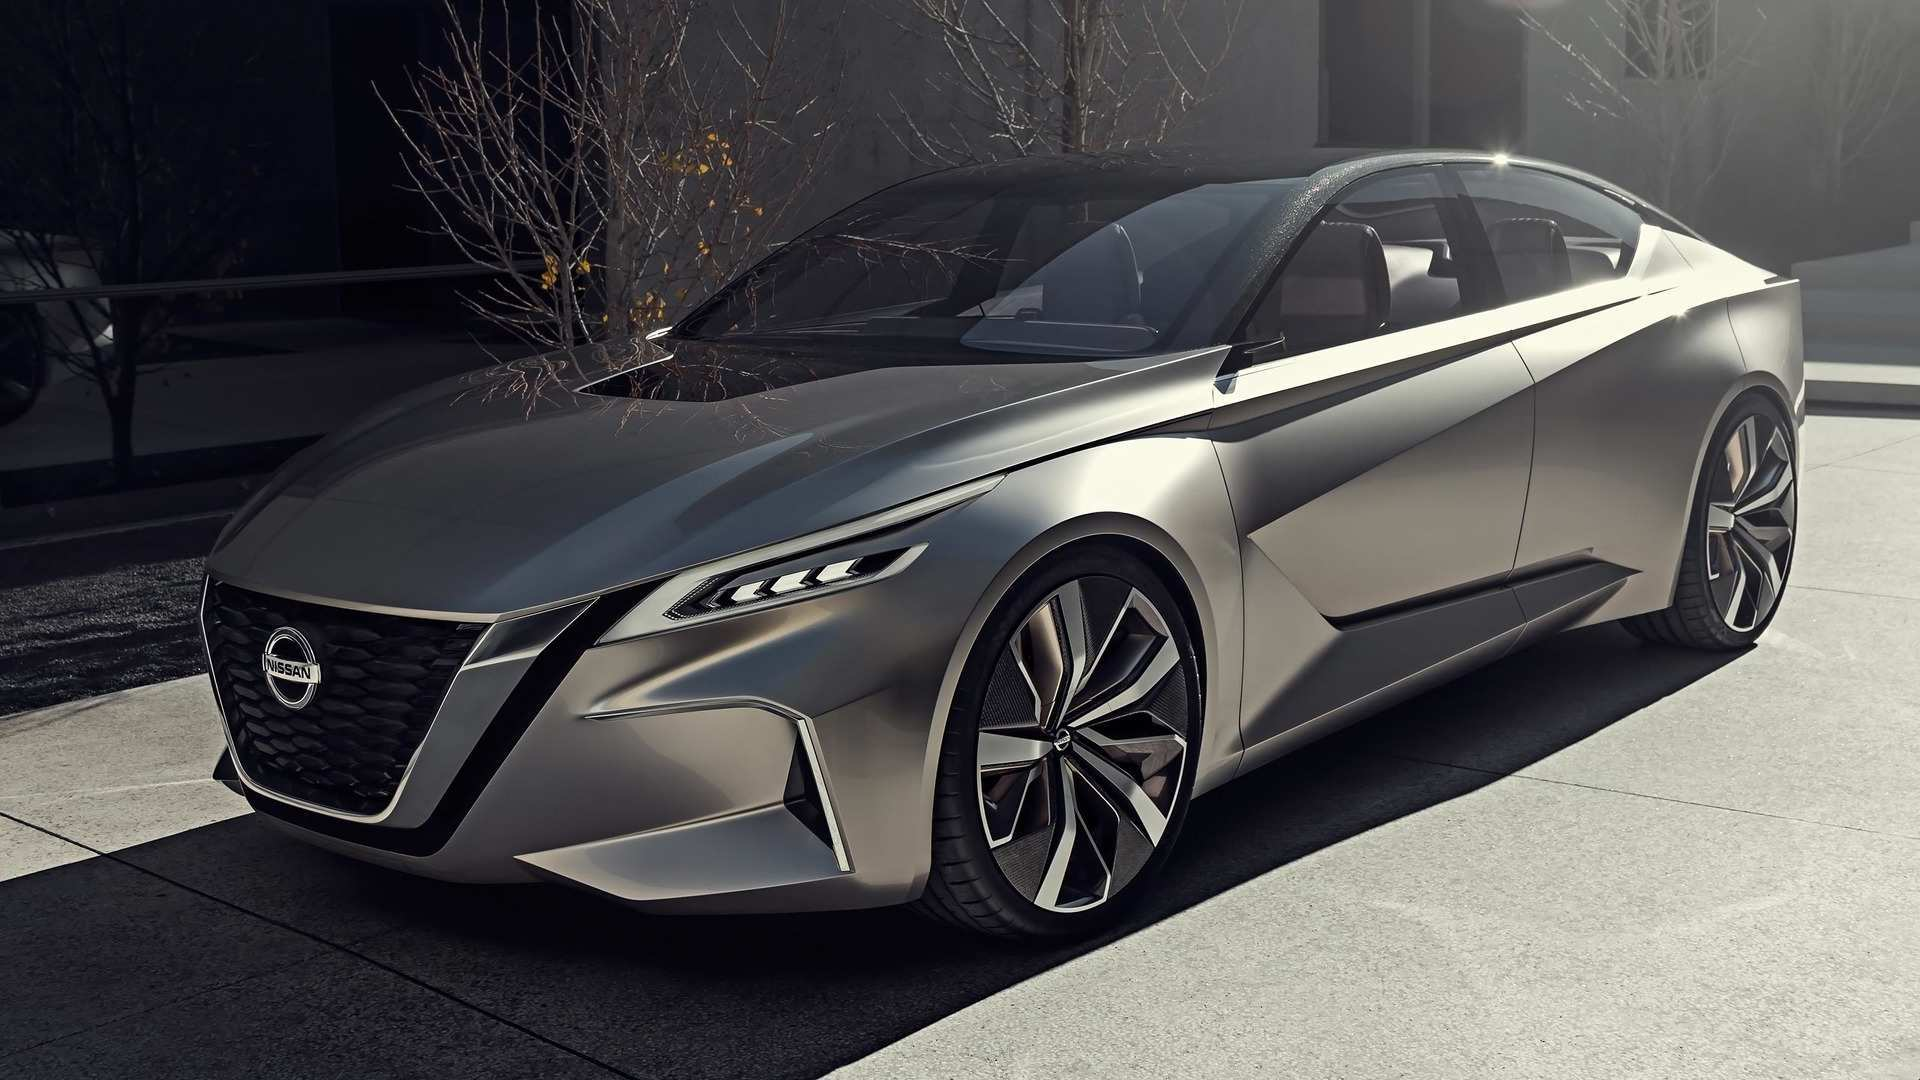 33 All New 2020 Nissan Maximas Specs and Review for 2020 Nissan Maximas